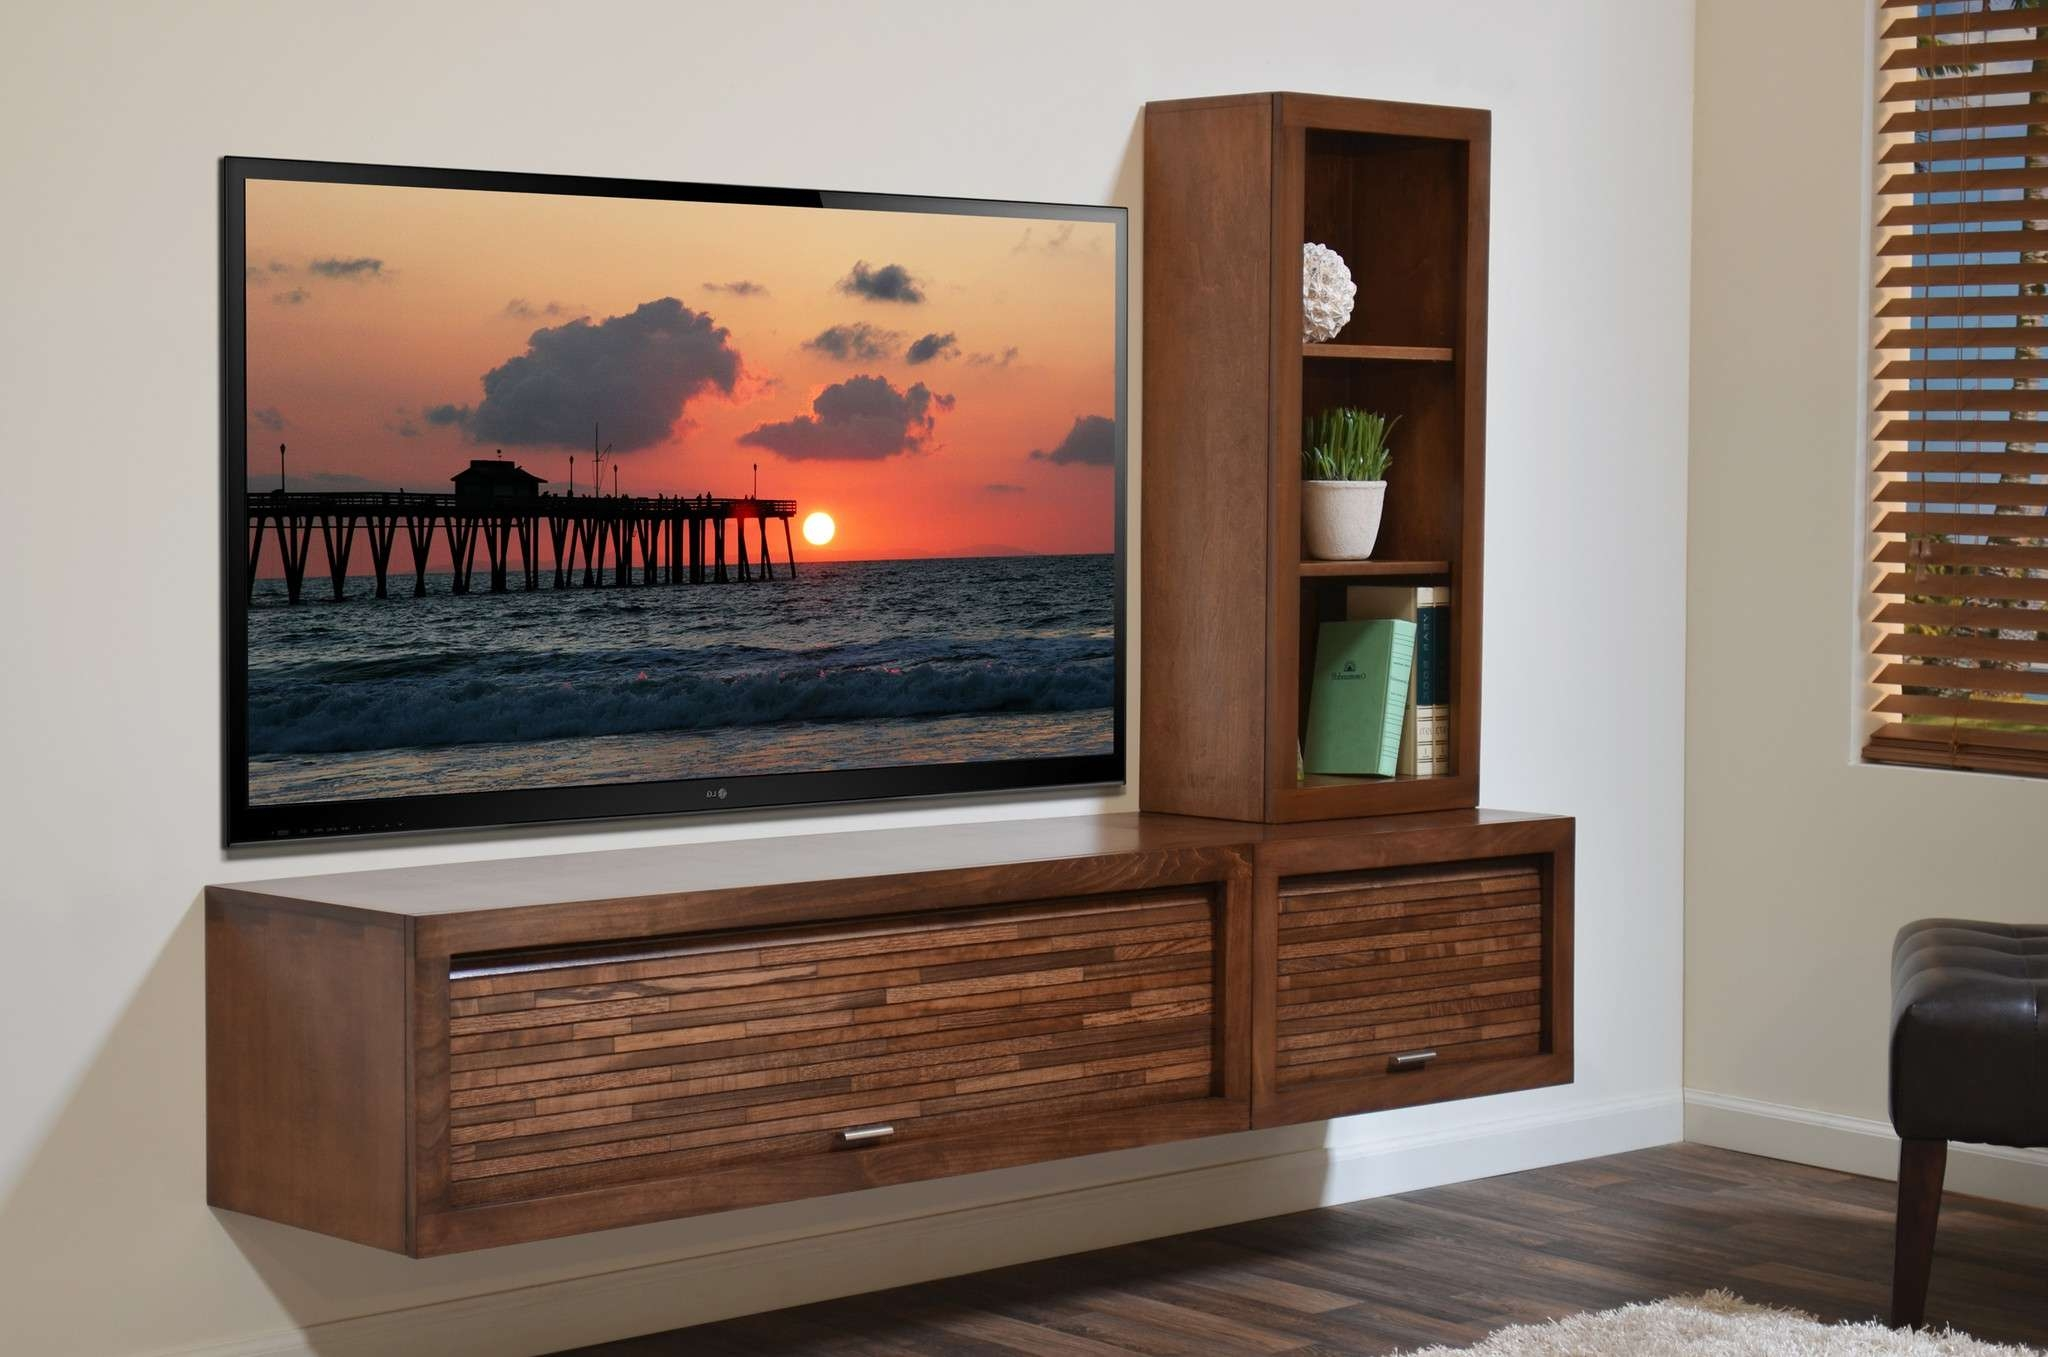 Home Decor : Wall Mounted Flat Screen Tv Cabinet Small Backyard Within Wall Mounted Tv Cabinets For Flat Screens (View 8 of 20)